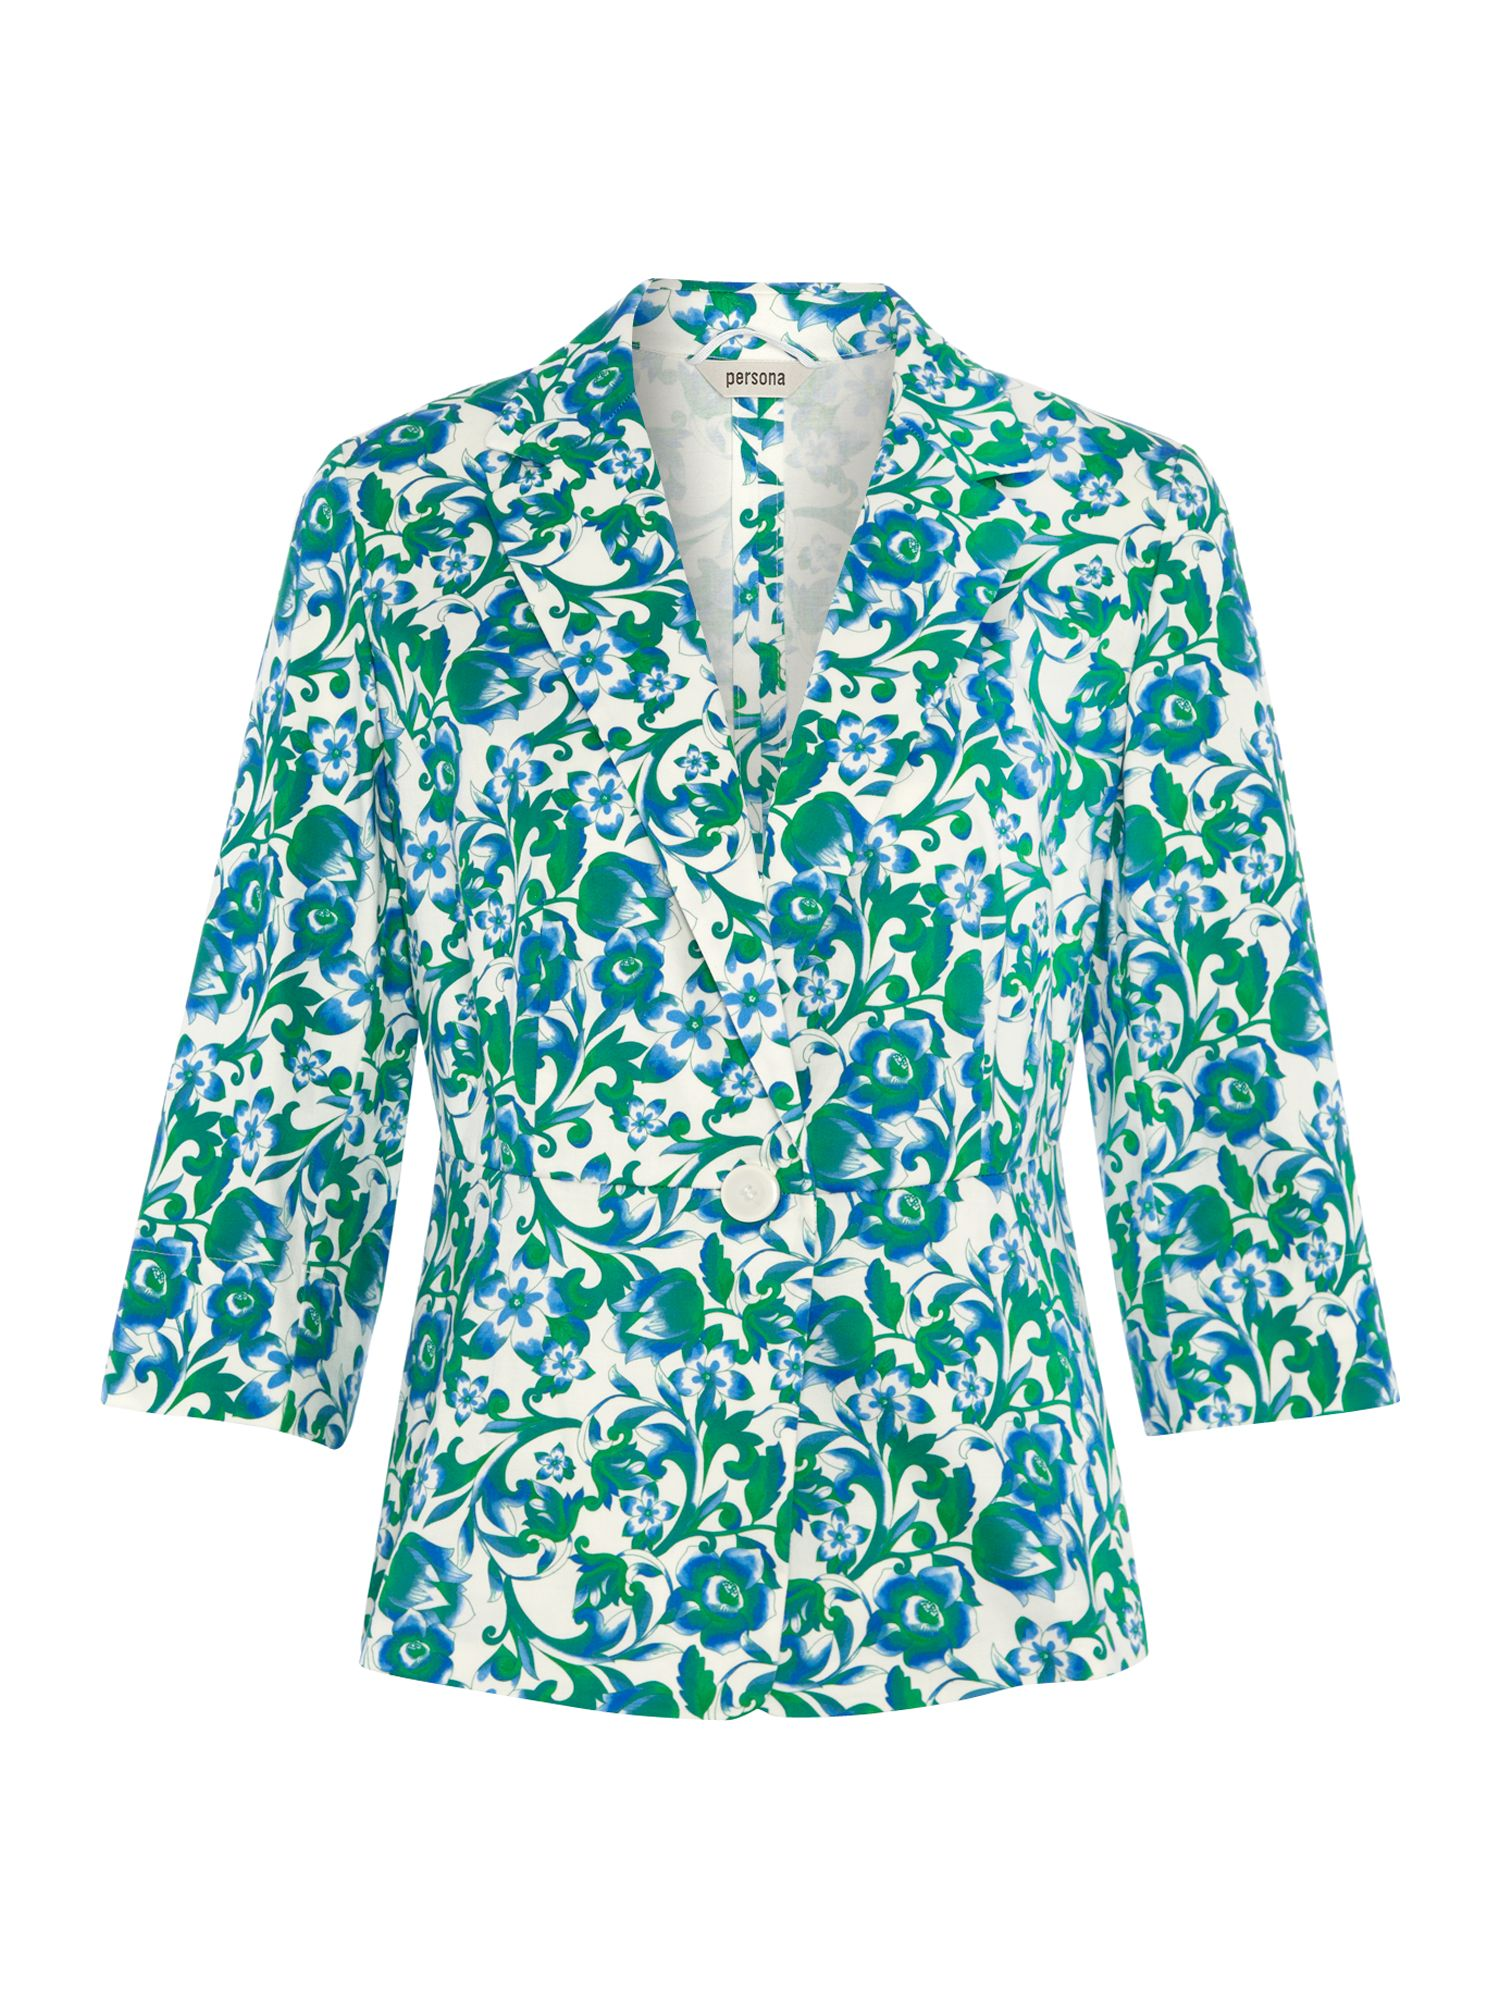 3/4 sleeved floral printed blazer